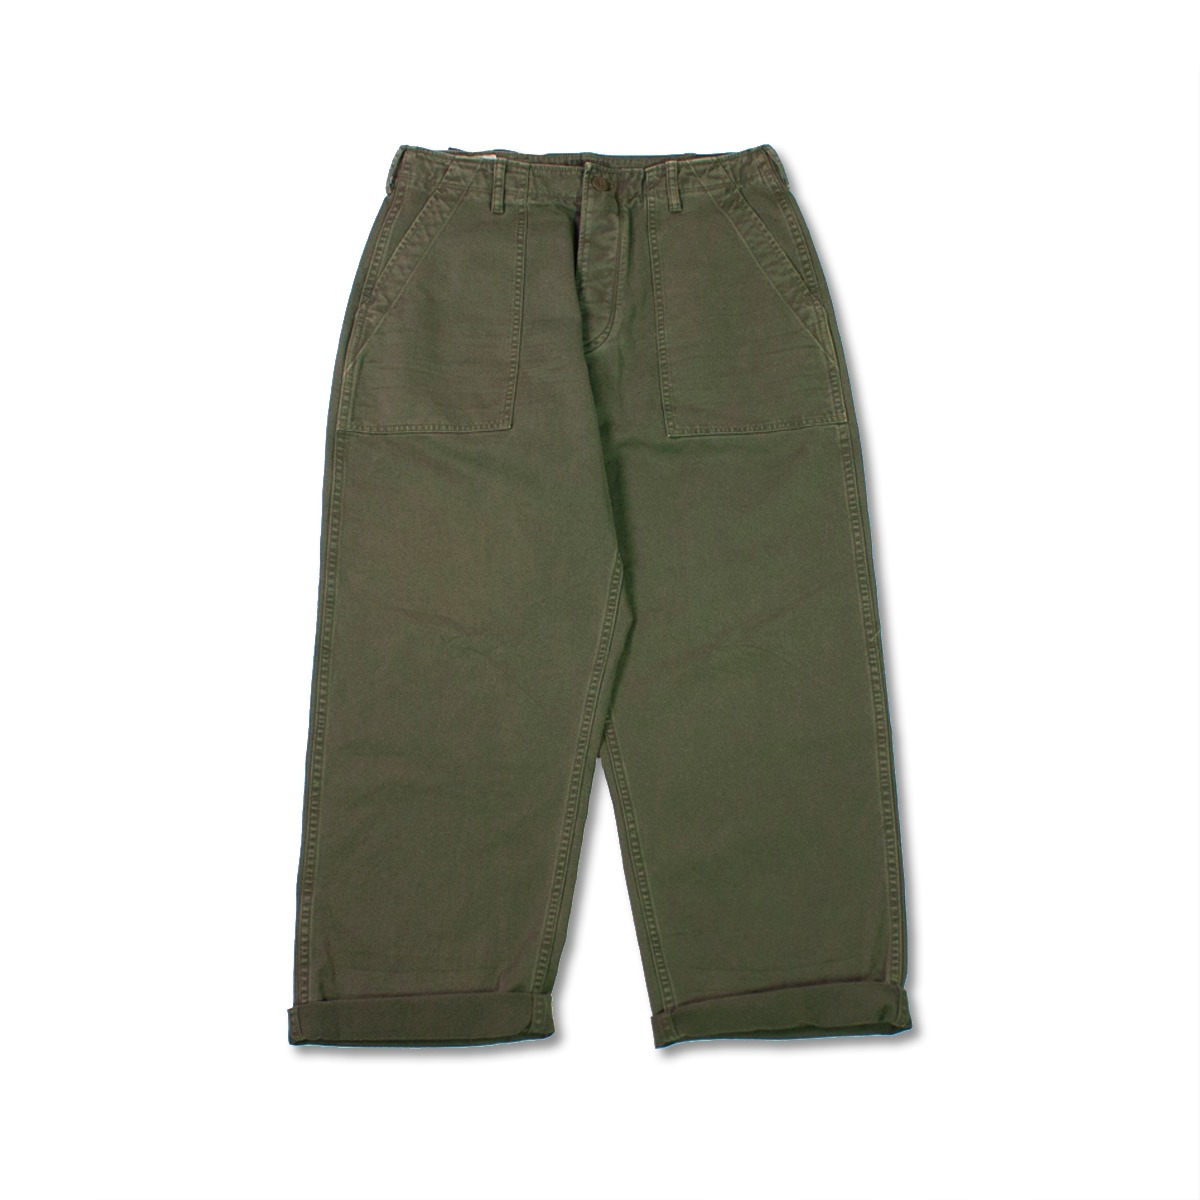 [MASON'S] FATIGUE PANTS 'KHAKI'